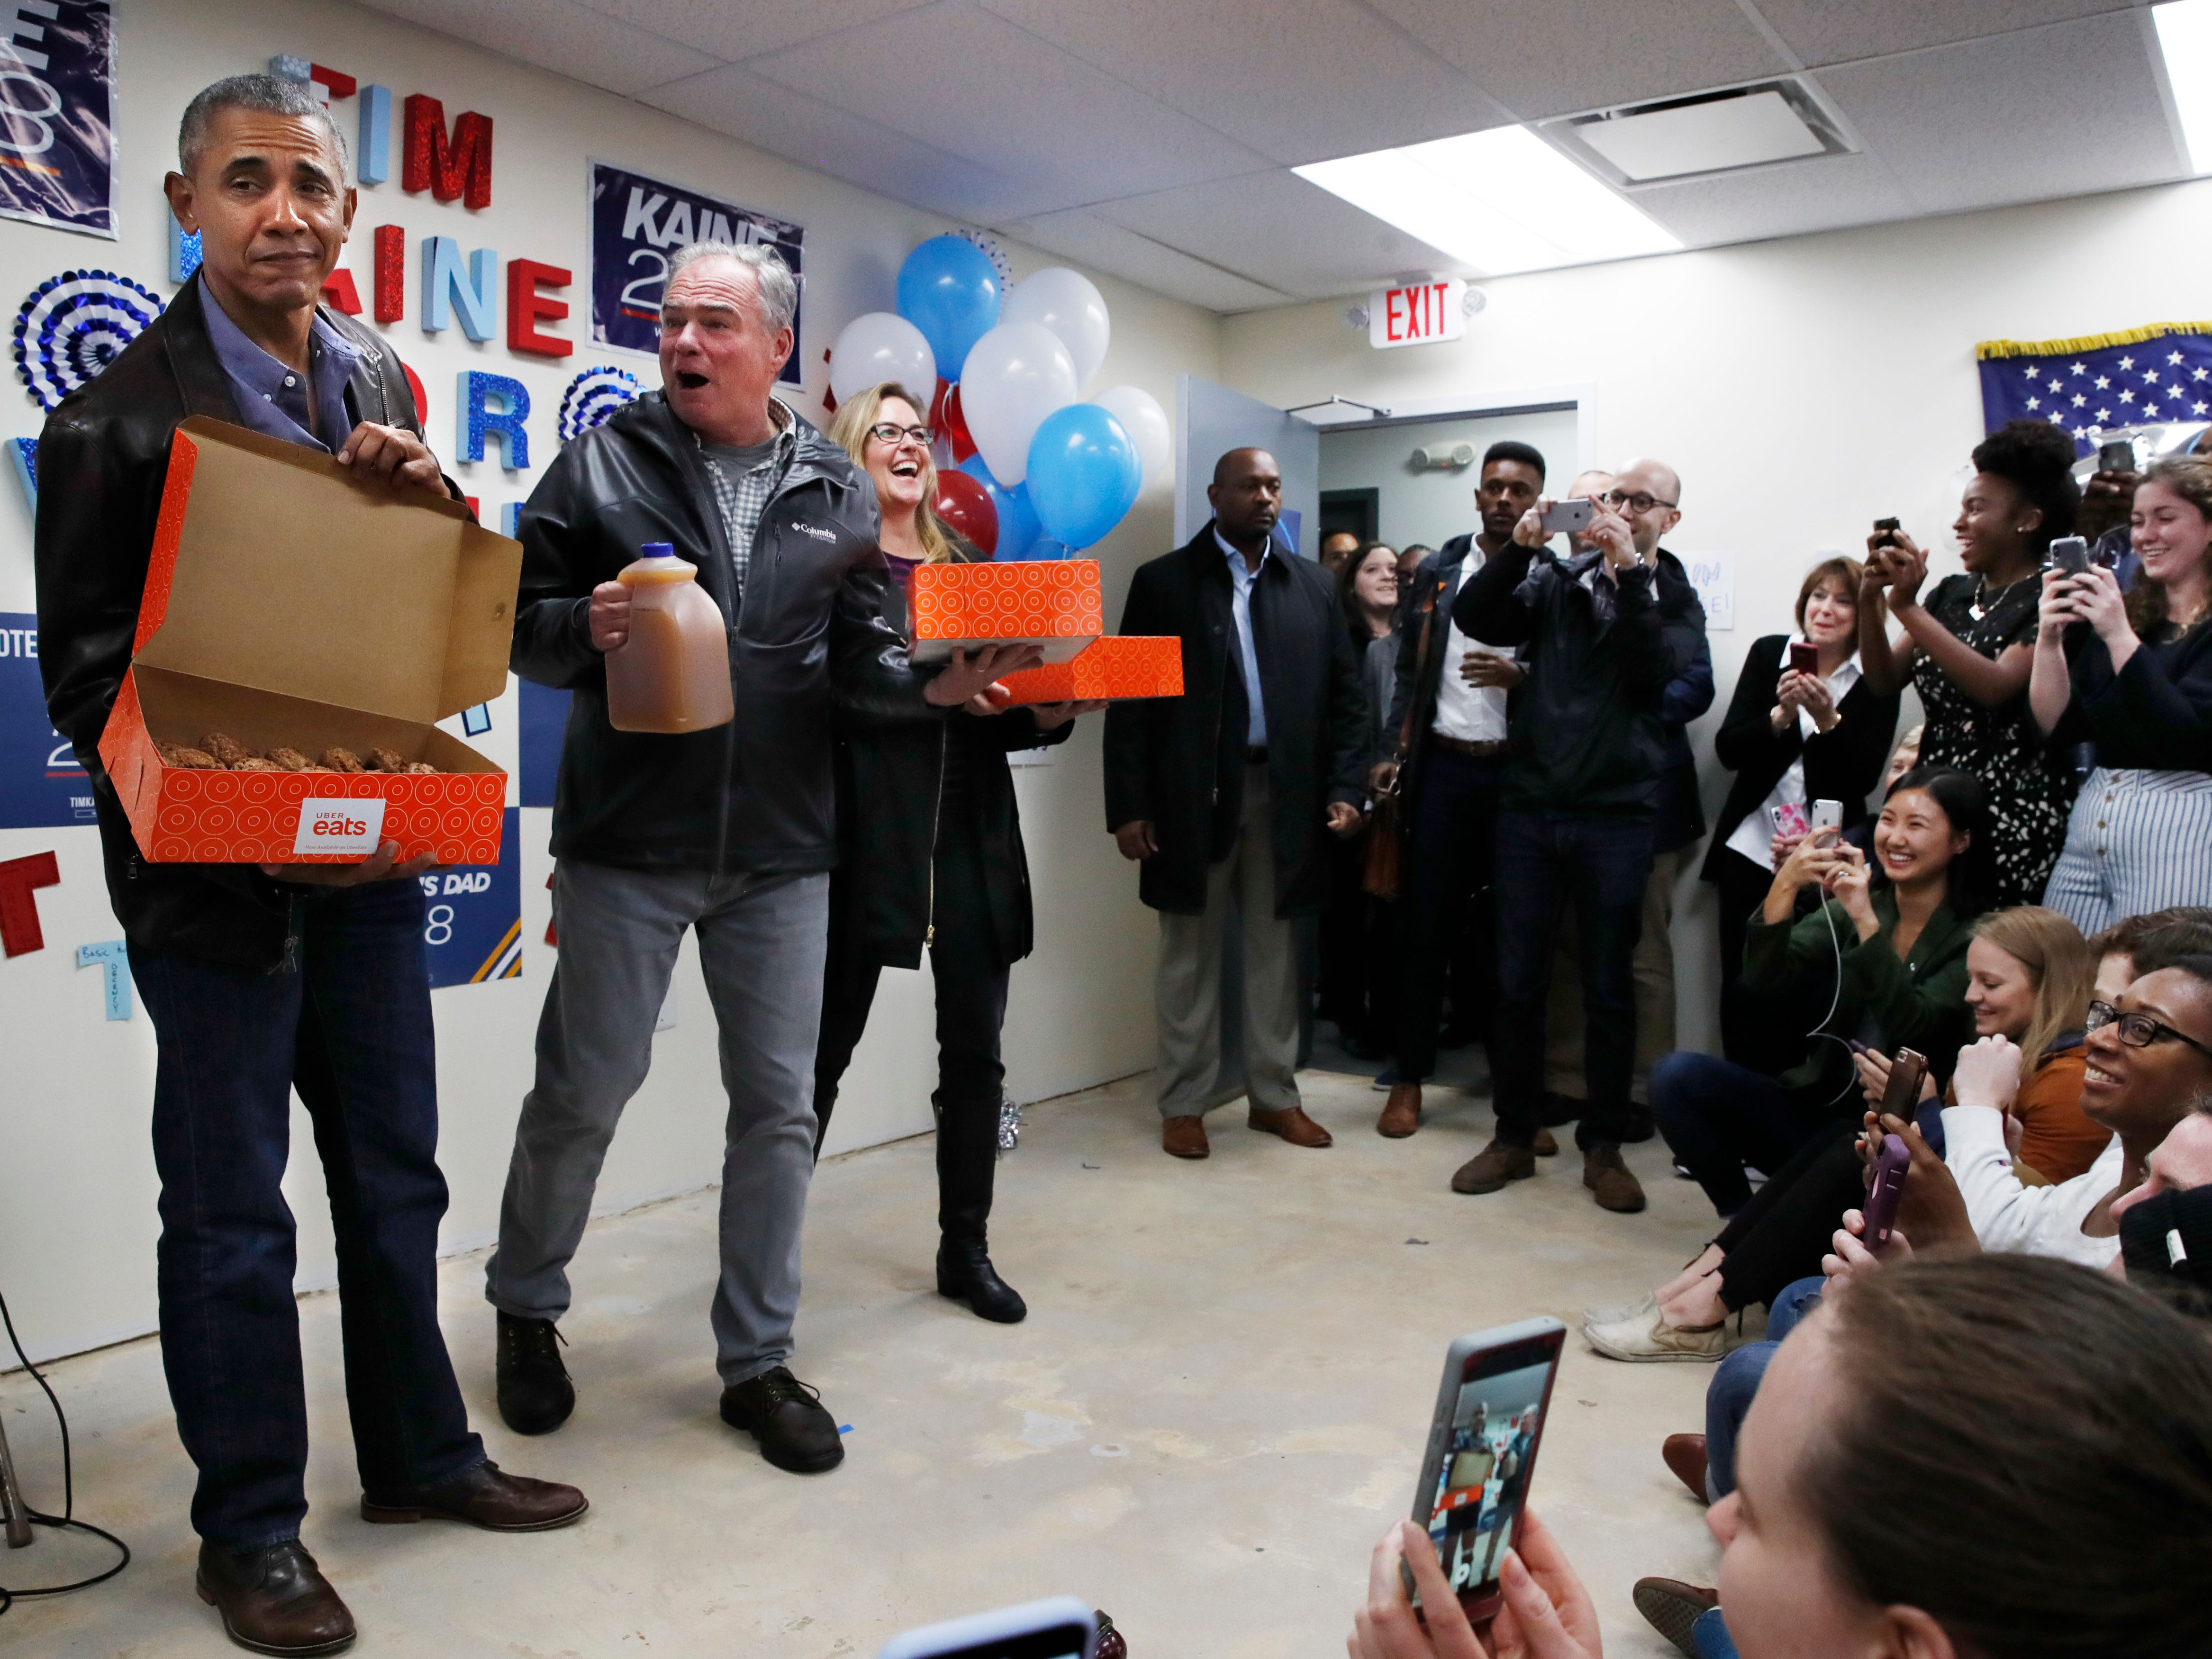 Obama surprises Democratic campaign workers in Virginia with doughnuts